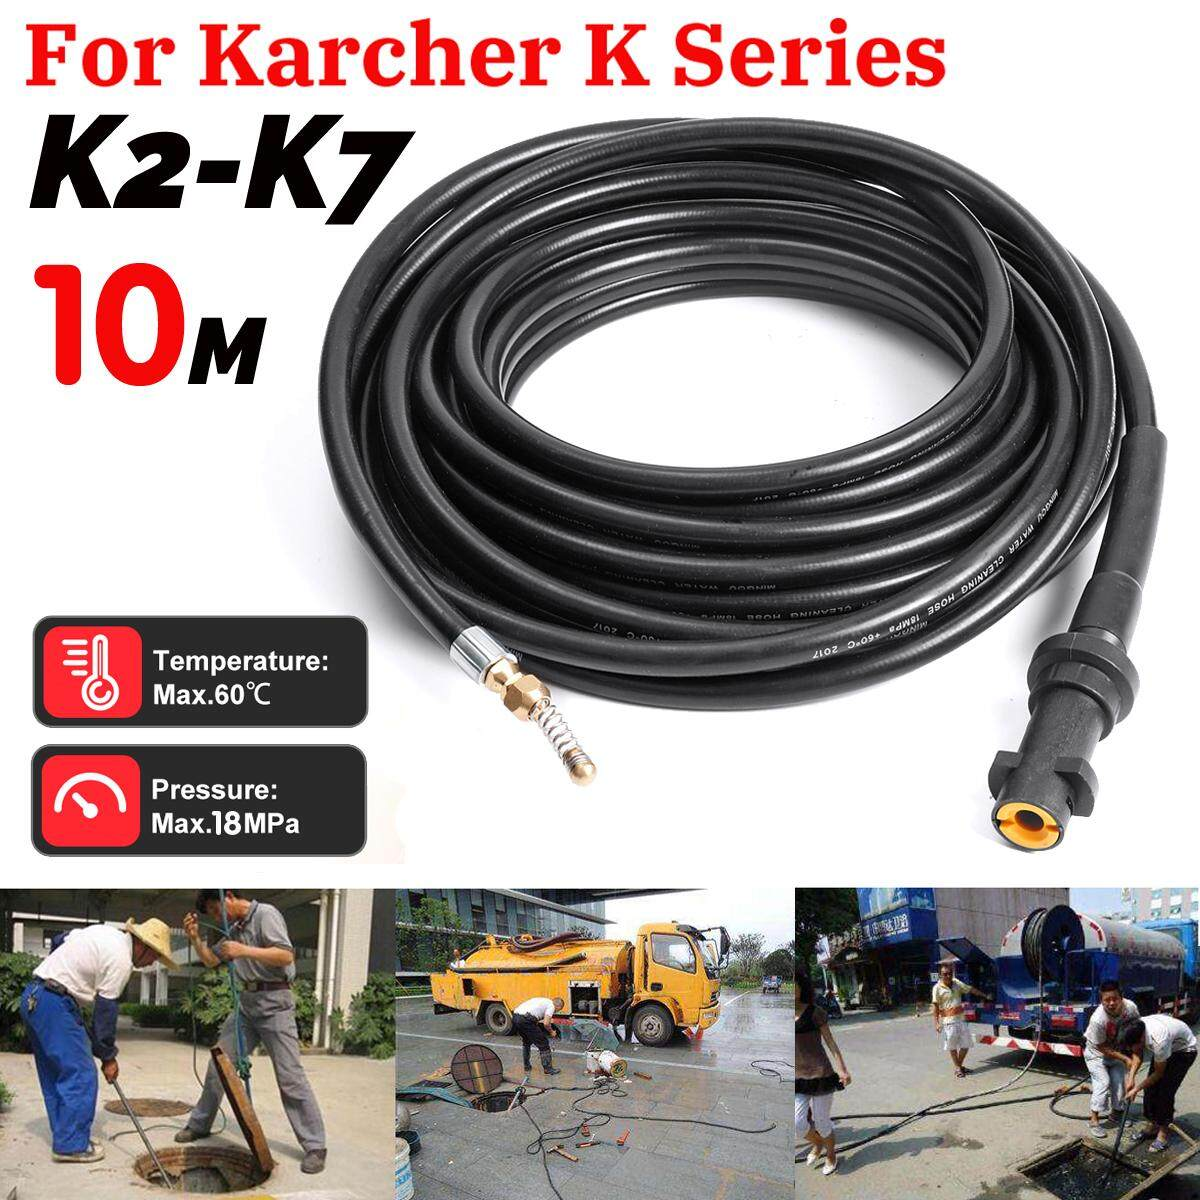 10M 18MPa Pressure Washer Sewer Drain Cleaning Hose For Karcher K2-K7